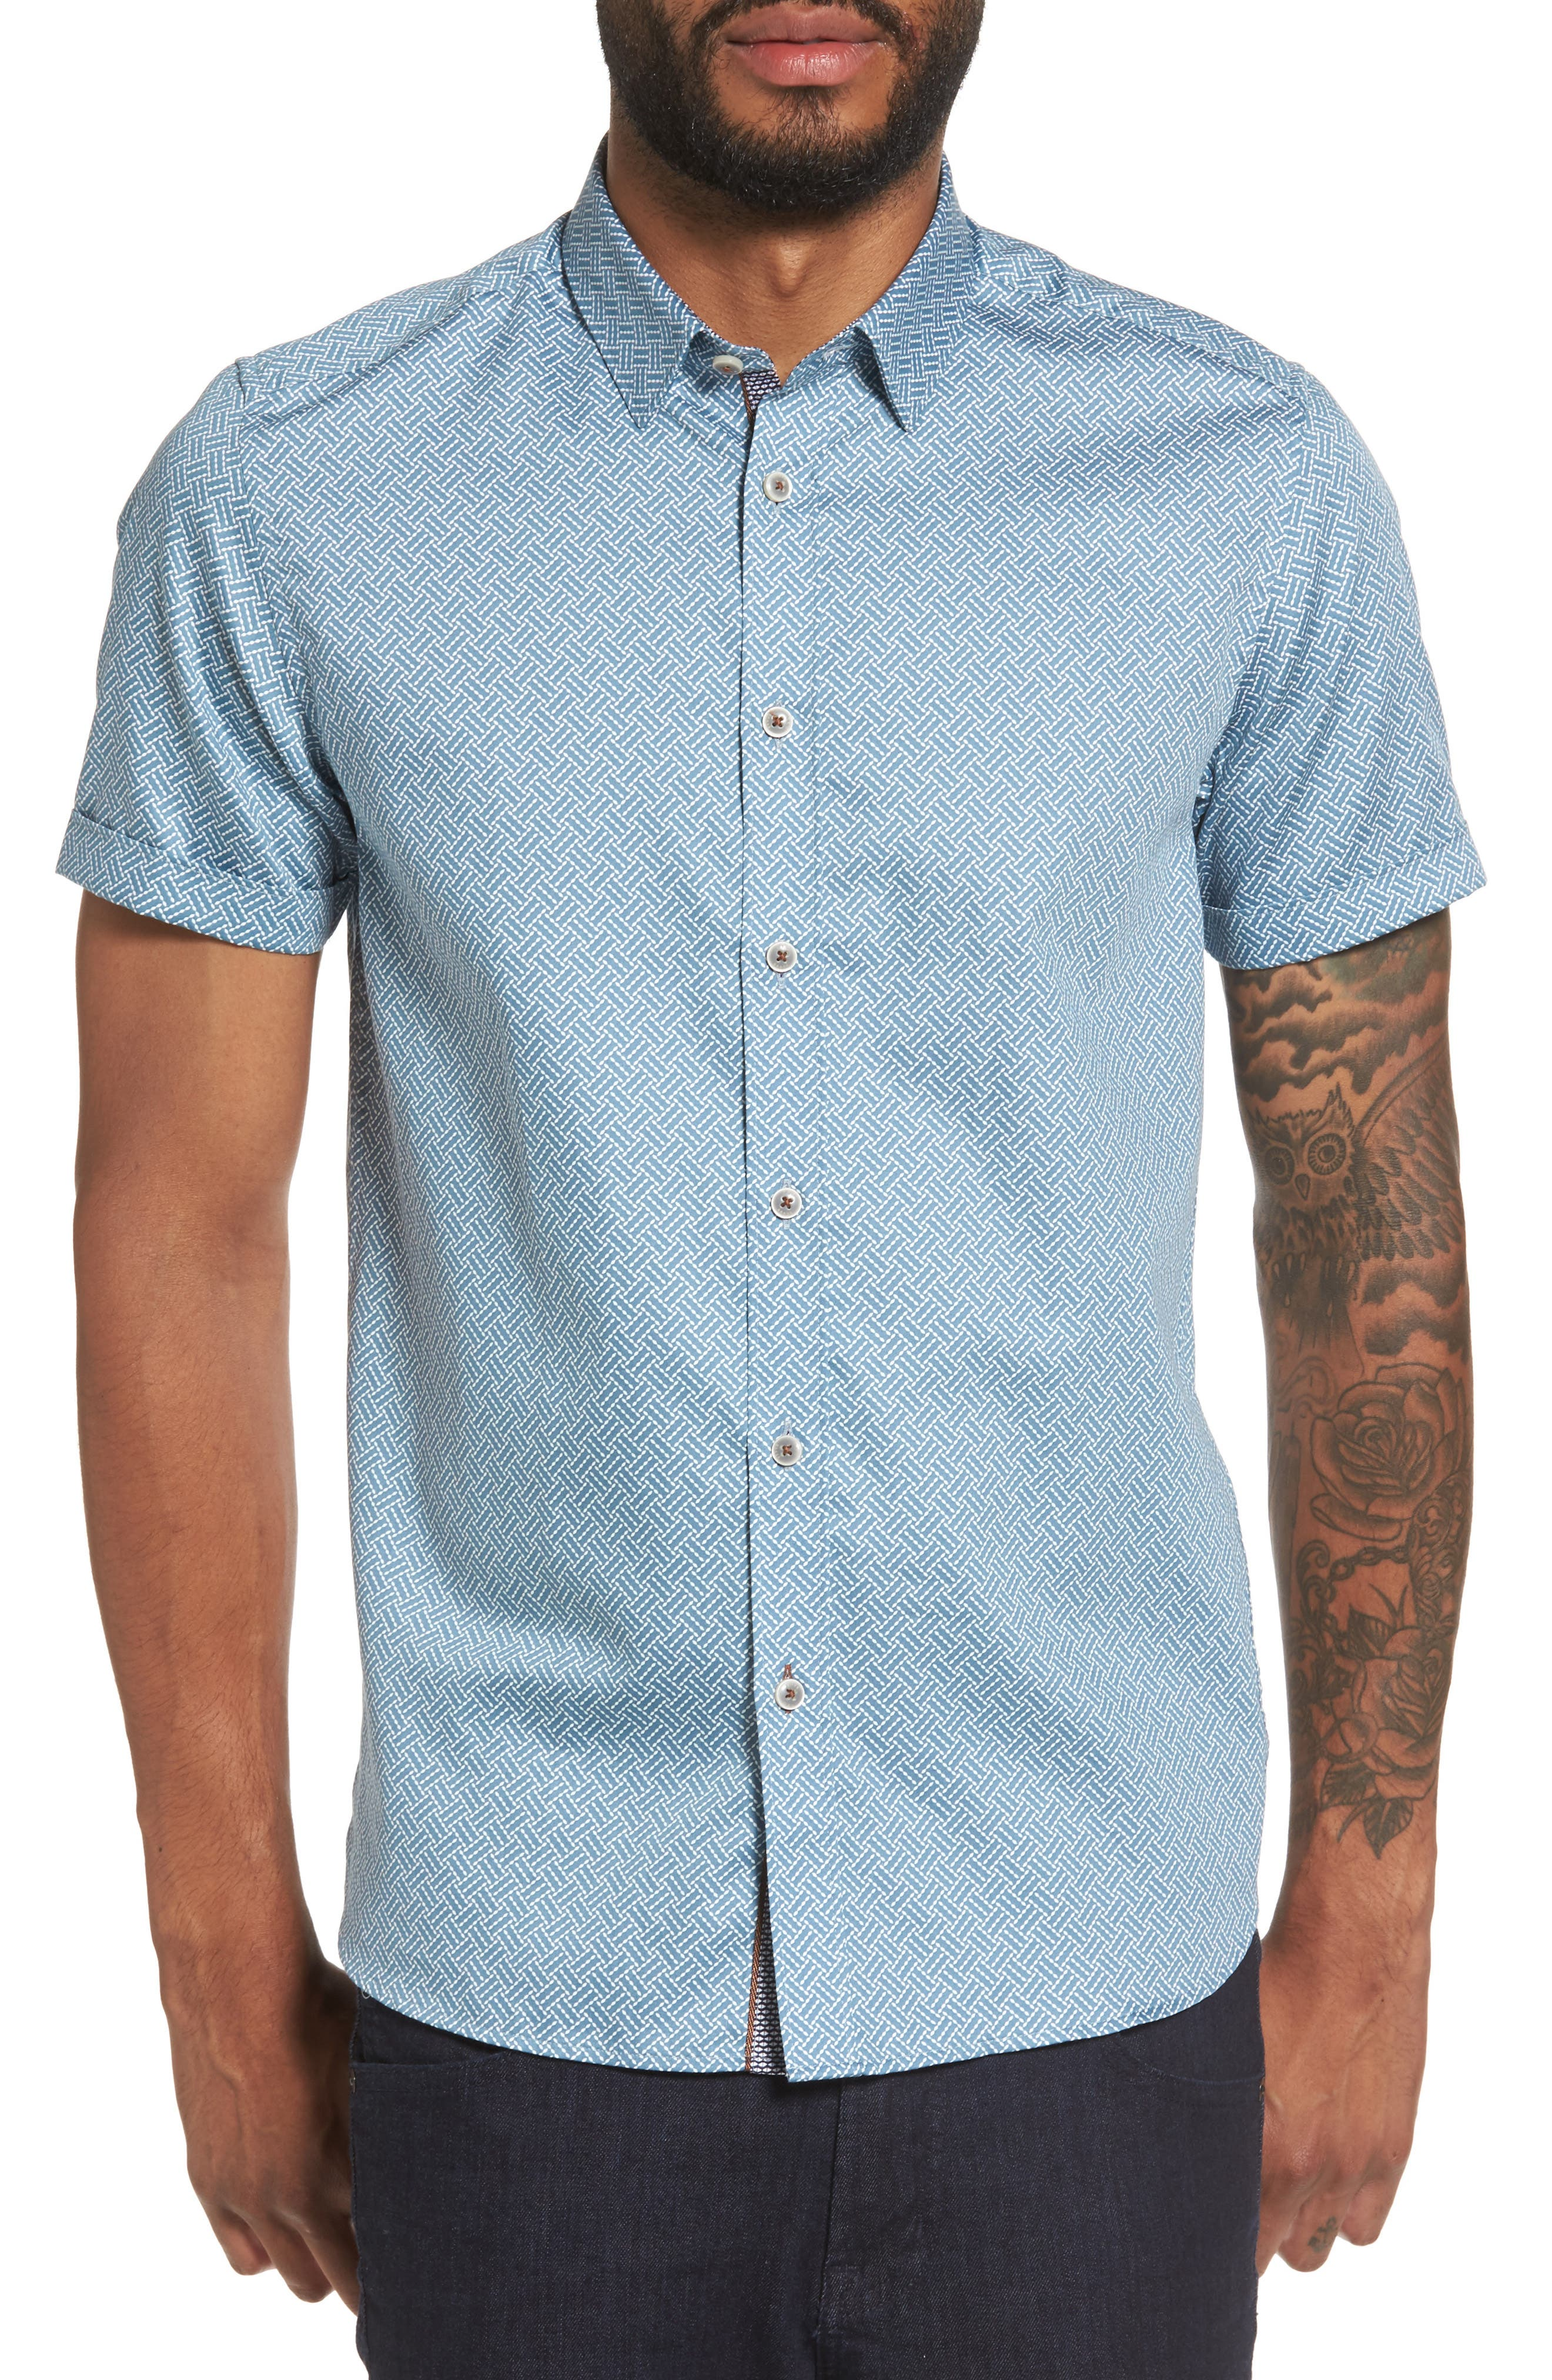 Main Image - Ted Baker London Lashore Basketweave Print Woven Shirt